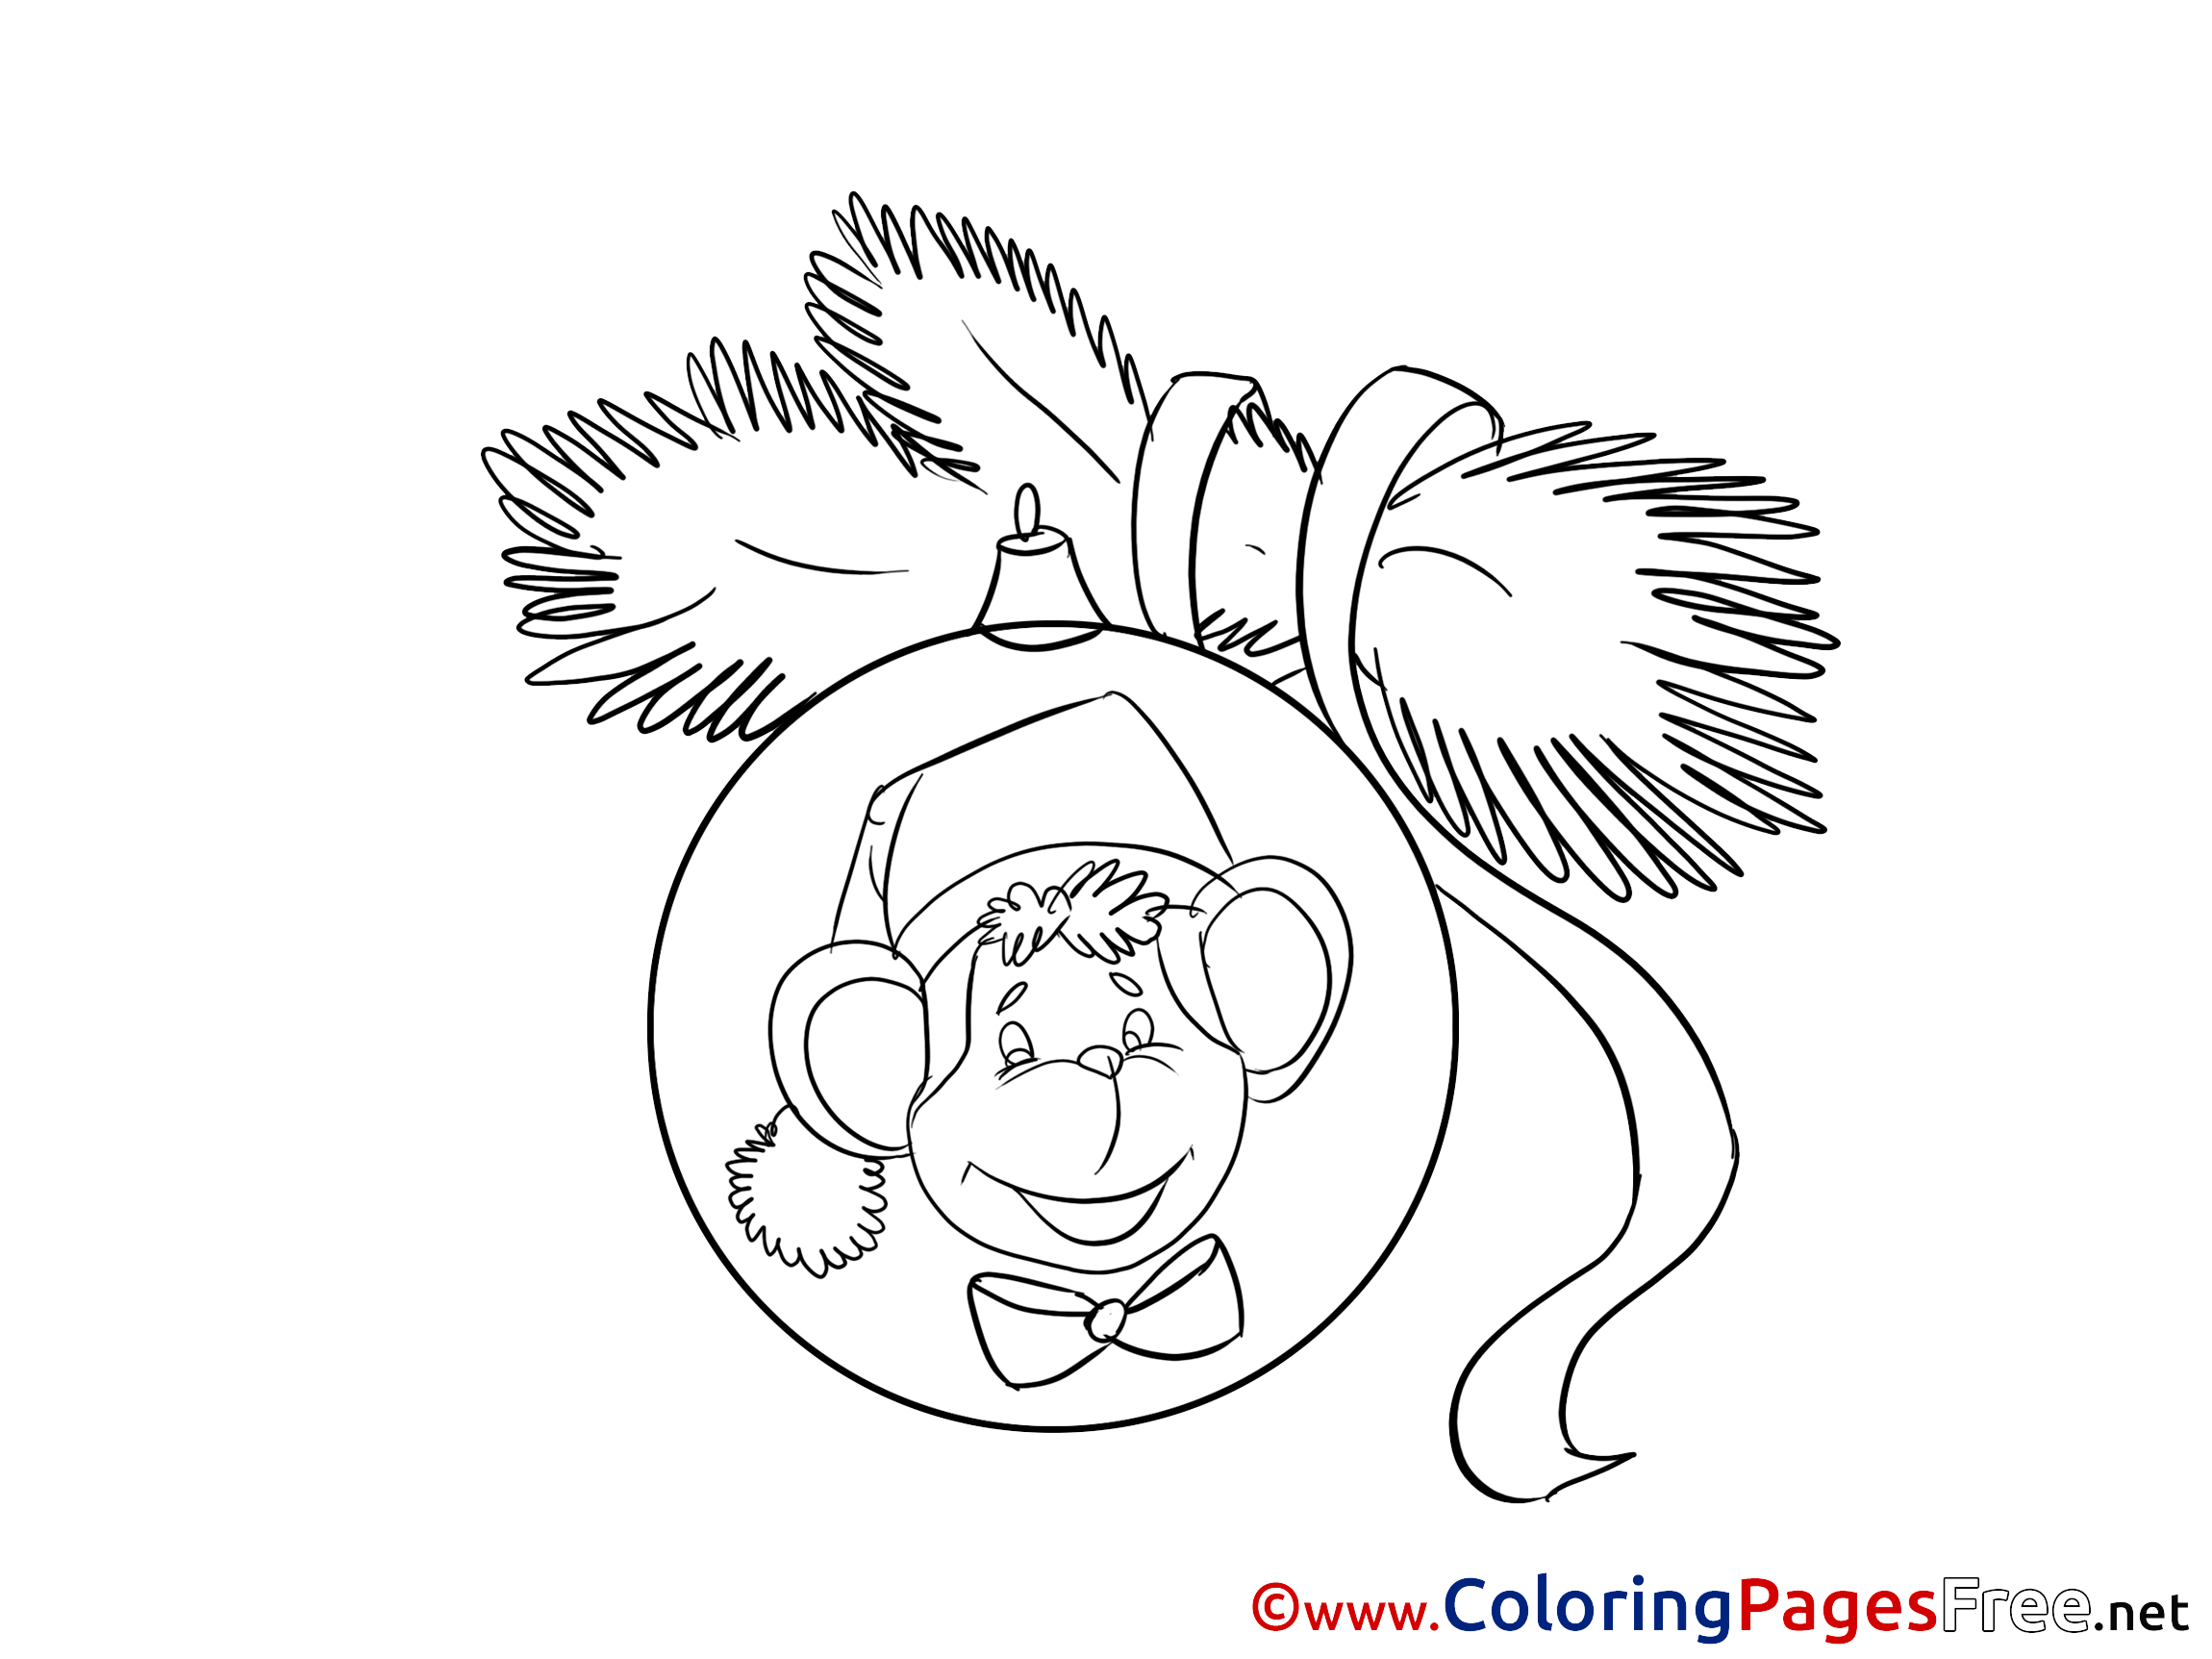 Baby Monkey Coloring Pages Printable - Get Coloring Pages | 1725x2300